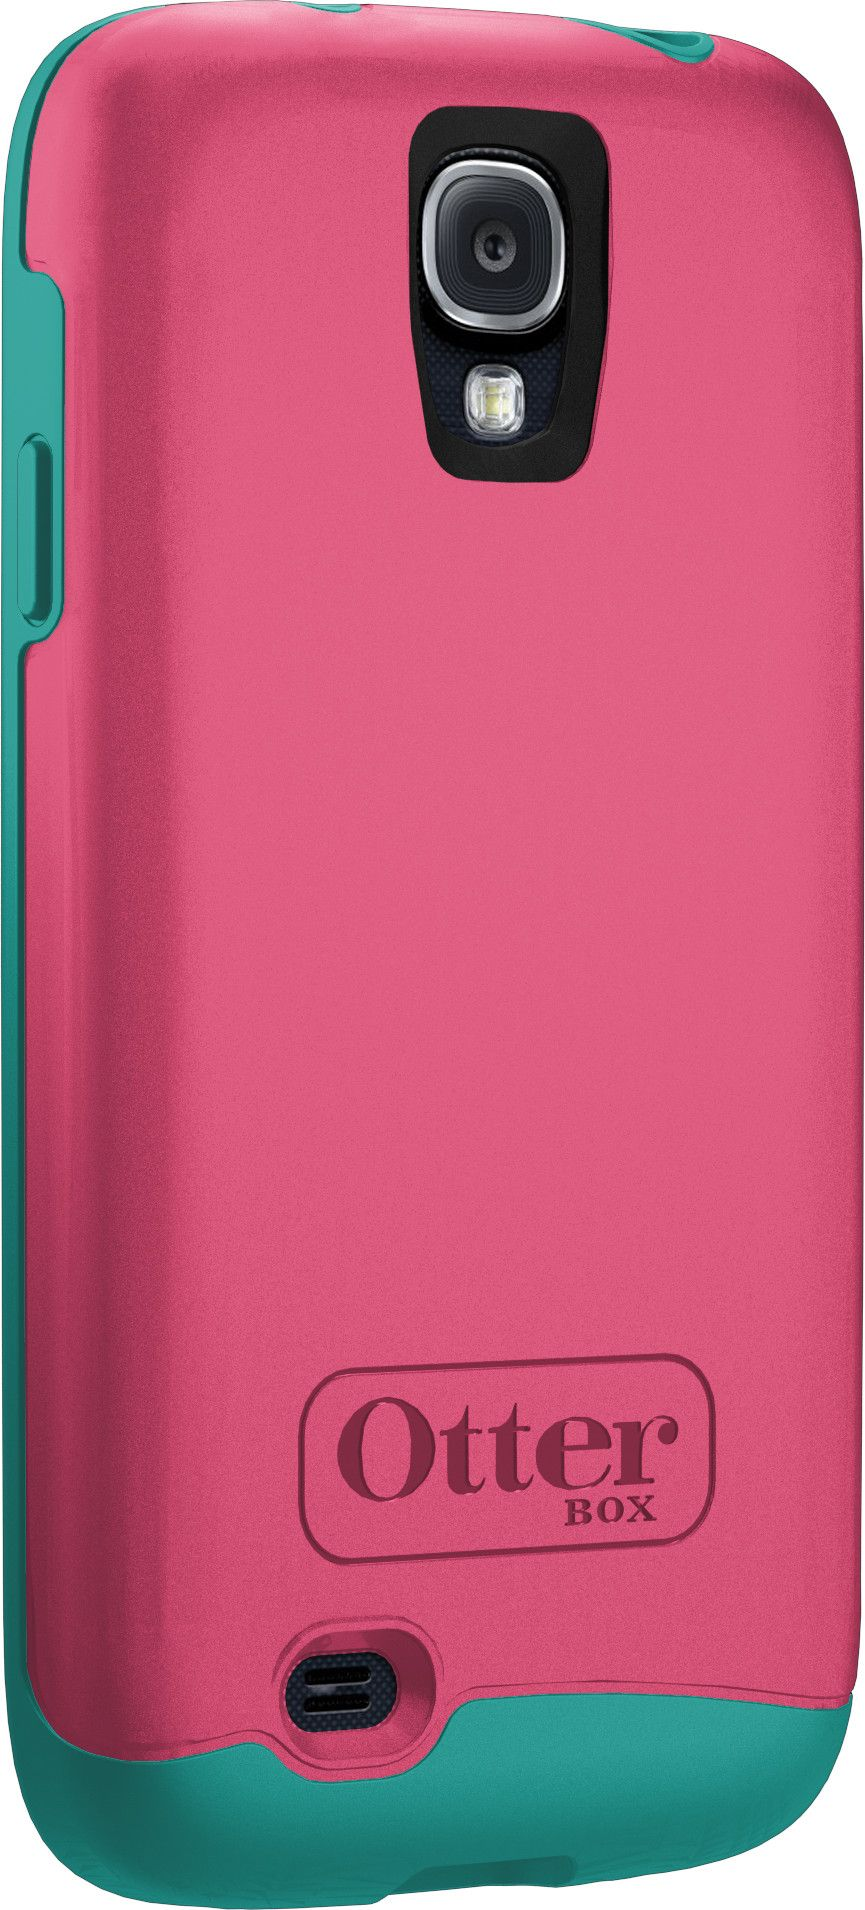 OtterBox_SymmetrySeries_samsung_TealRose